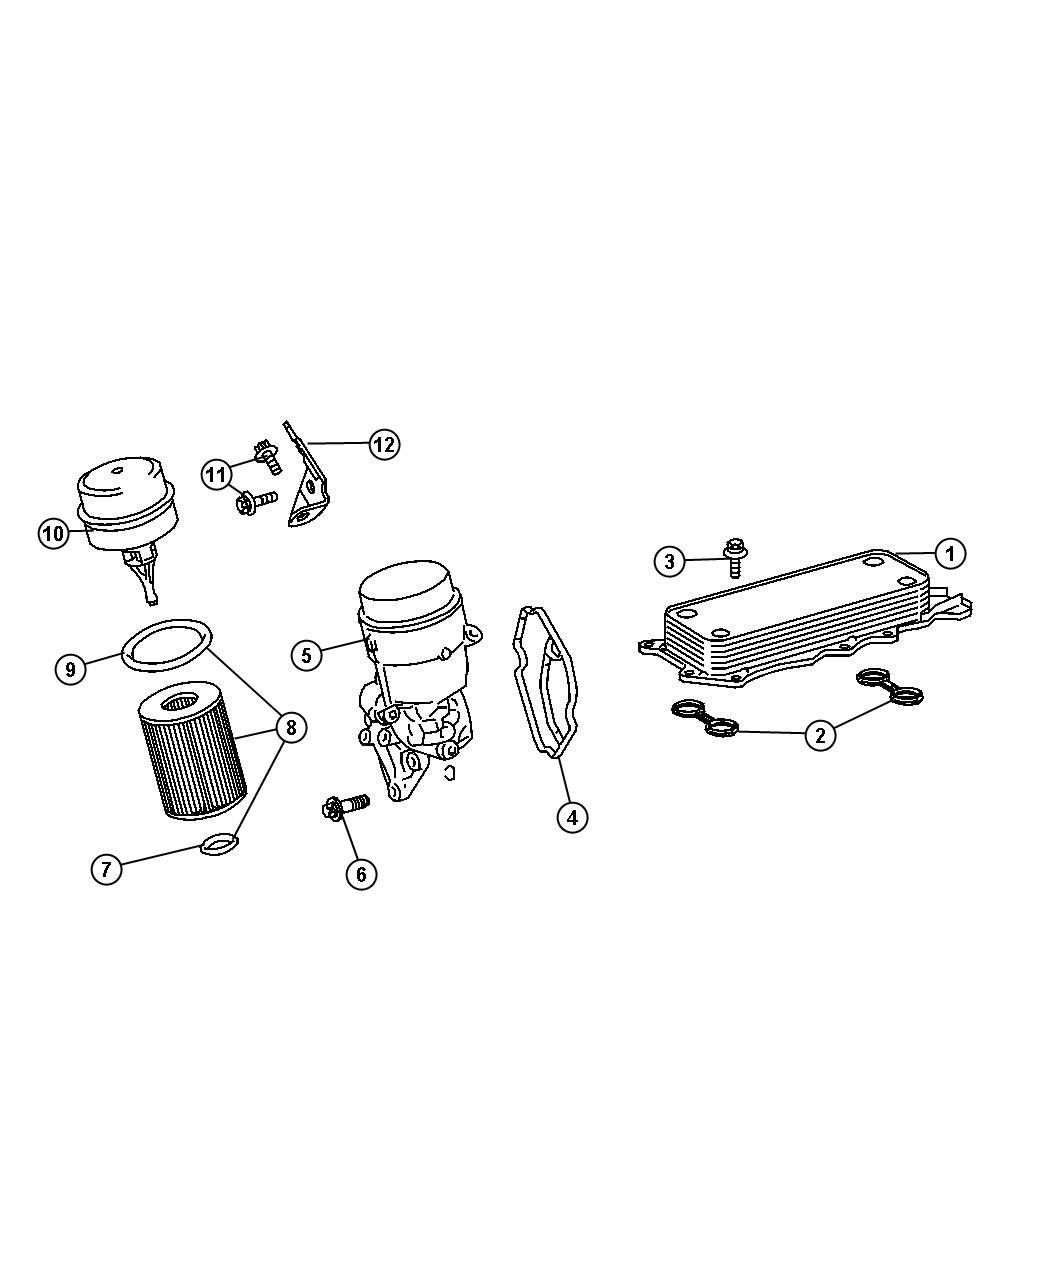 Duramax Cp3 Pump Parts Diagram Horizontal Split Case Fire